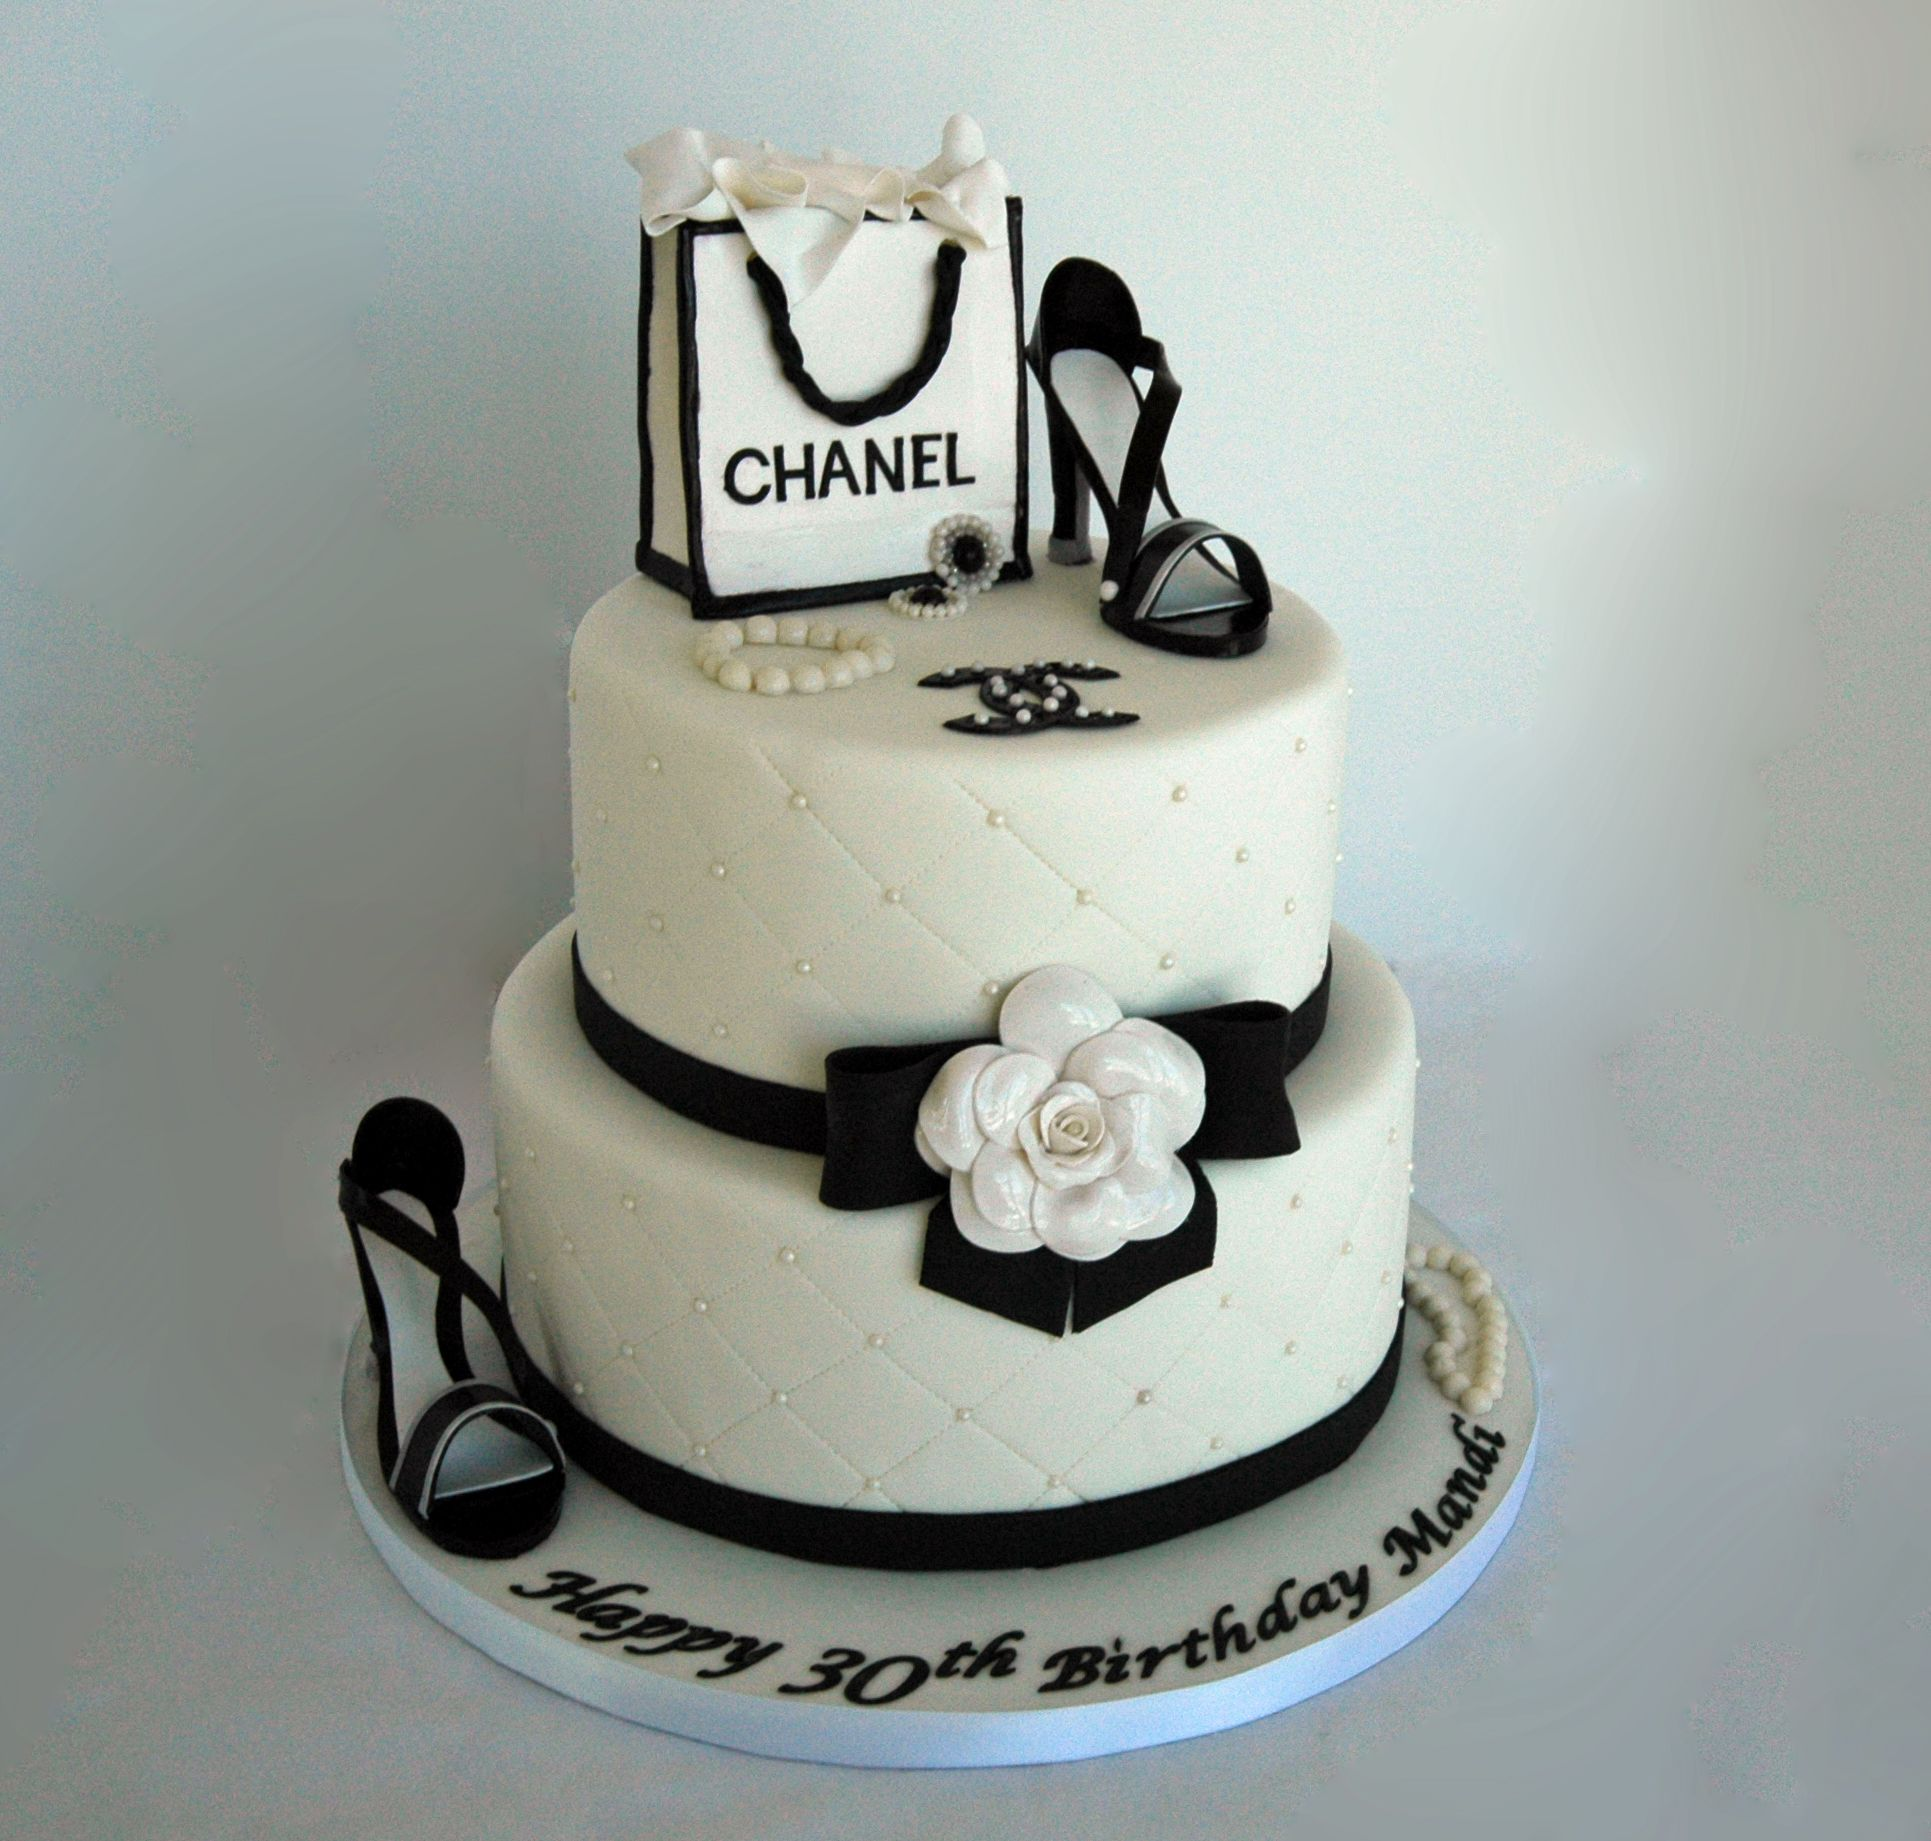 Chanel Cake Ideas: Chanel Theme Fondant Birthday Cake With Gumpaste Shoes